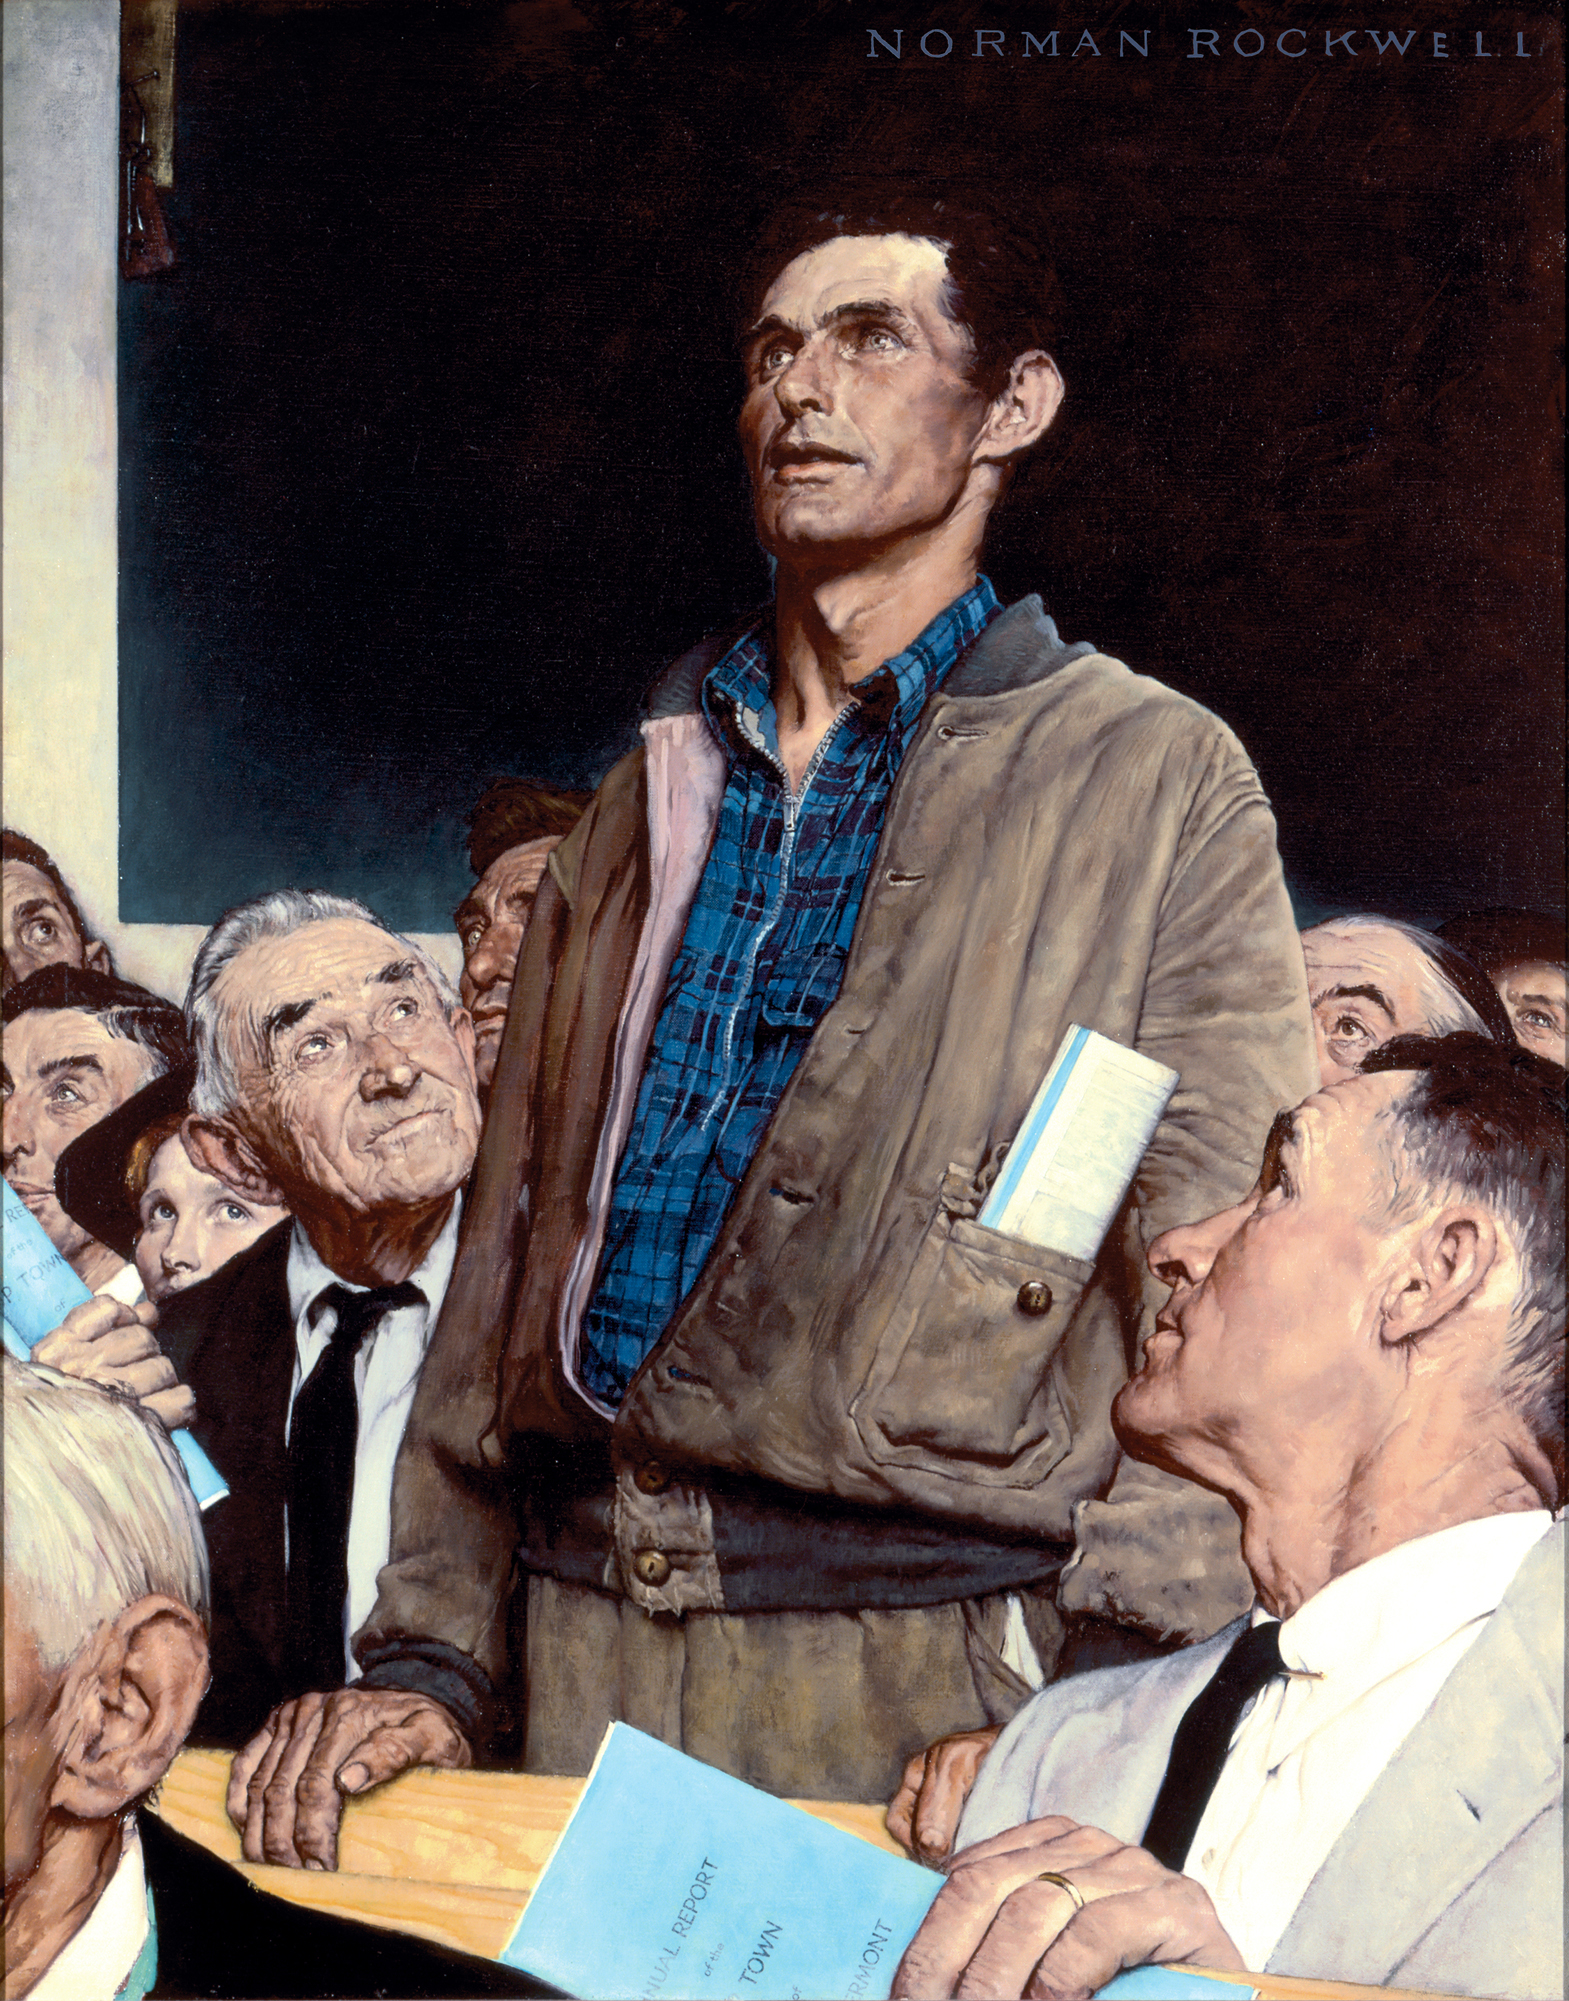 Hat Stand Freedom Collections Four Freedoms Norman Rockwell Museum The Home For